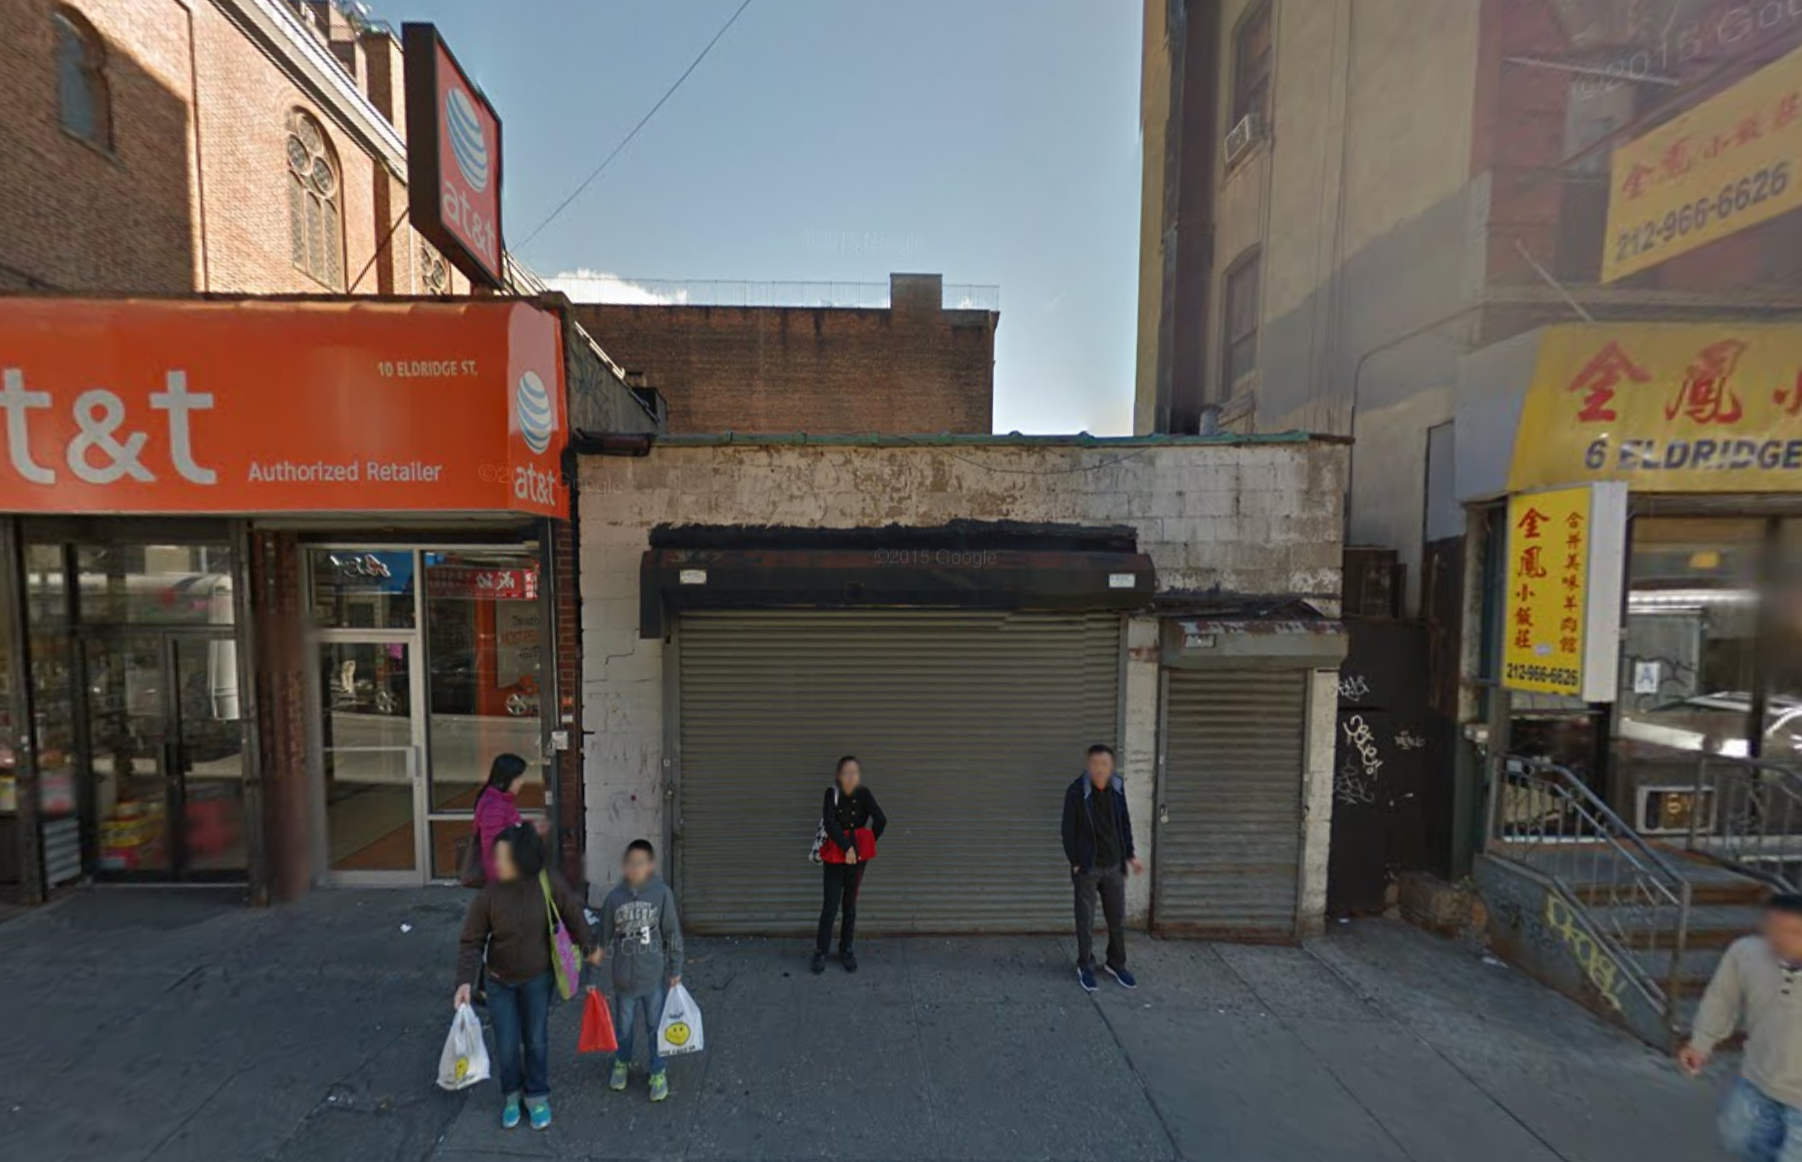 10 Eldridge Street, image via Google Maps